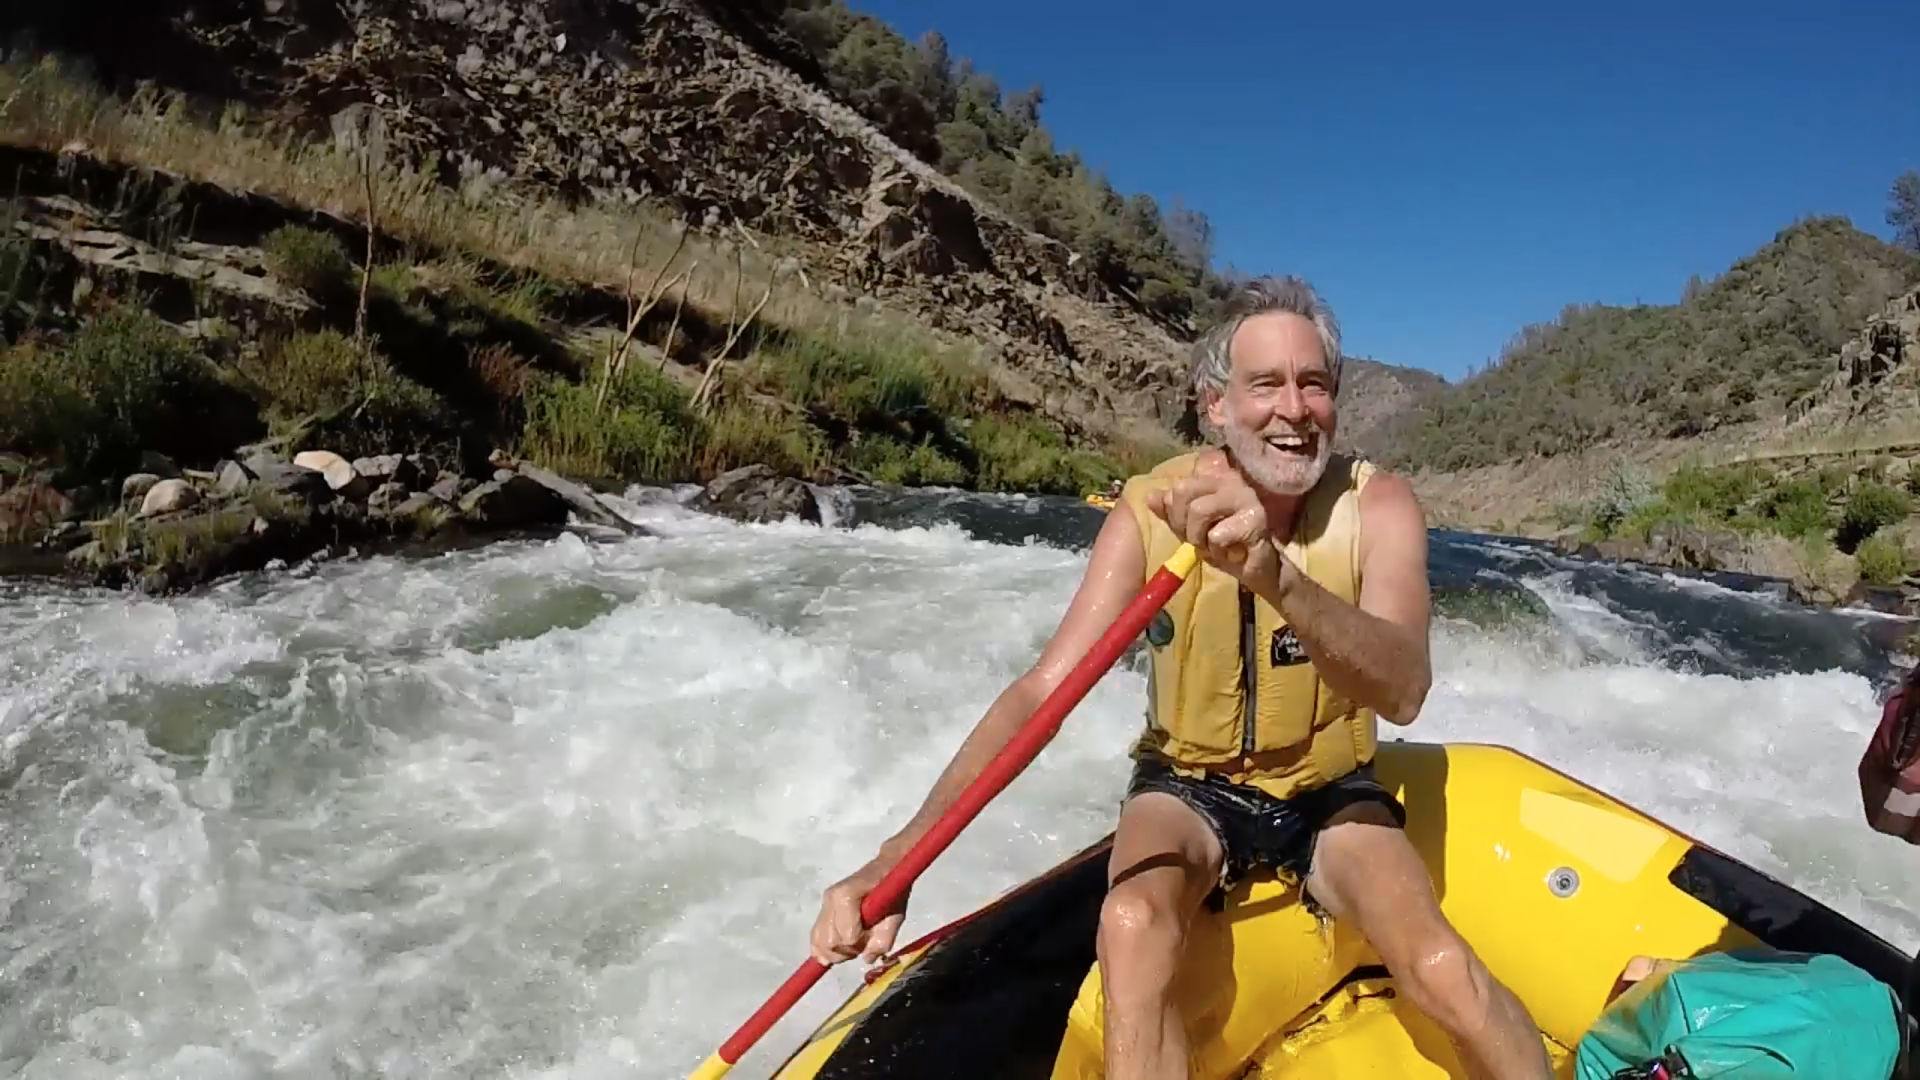 Mark DuBois rafting the Stanislaus for the first time in more than three decades. DuBois is considered an icon among river advocates.